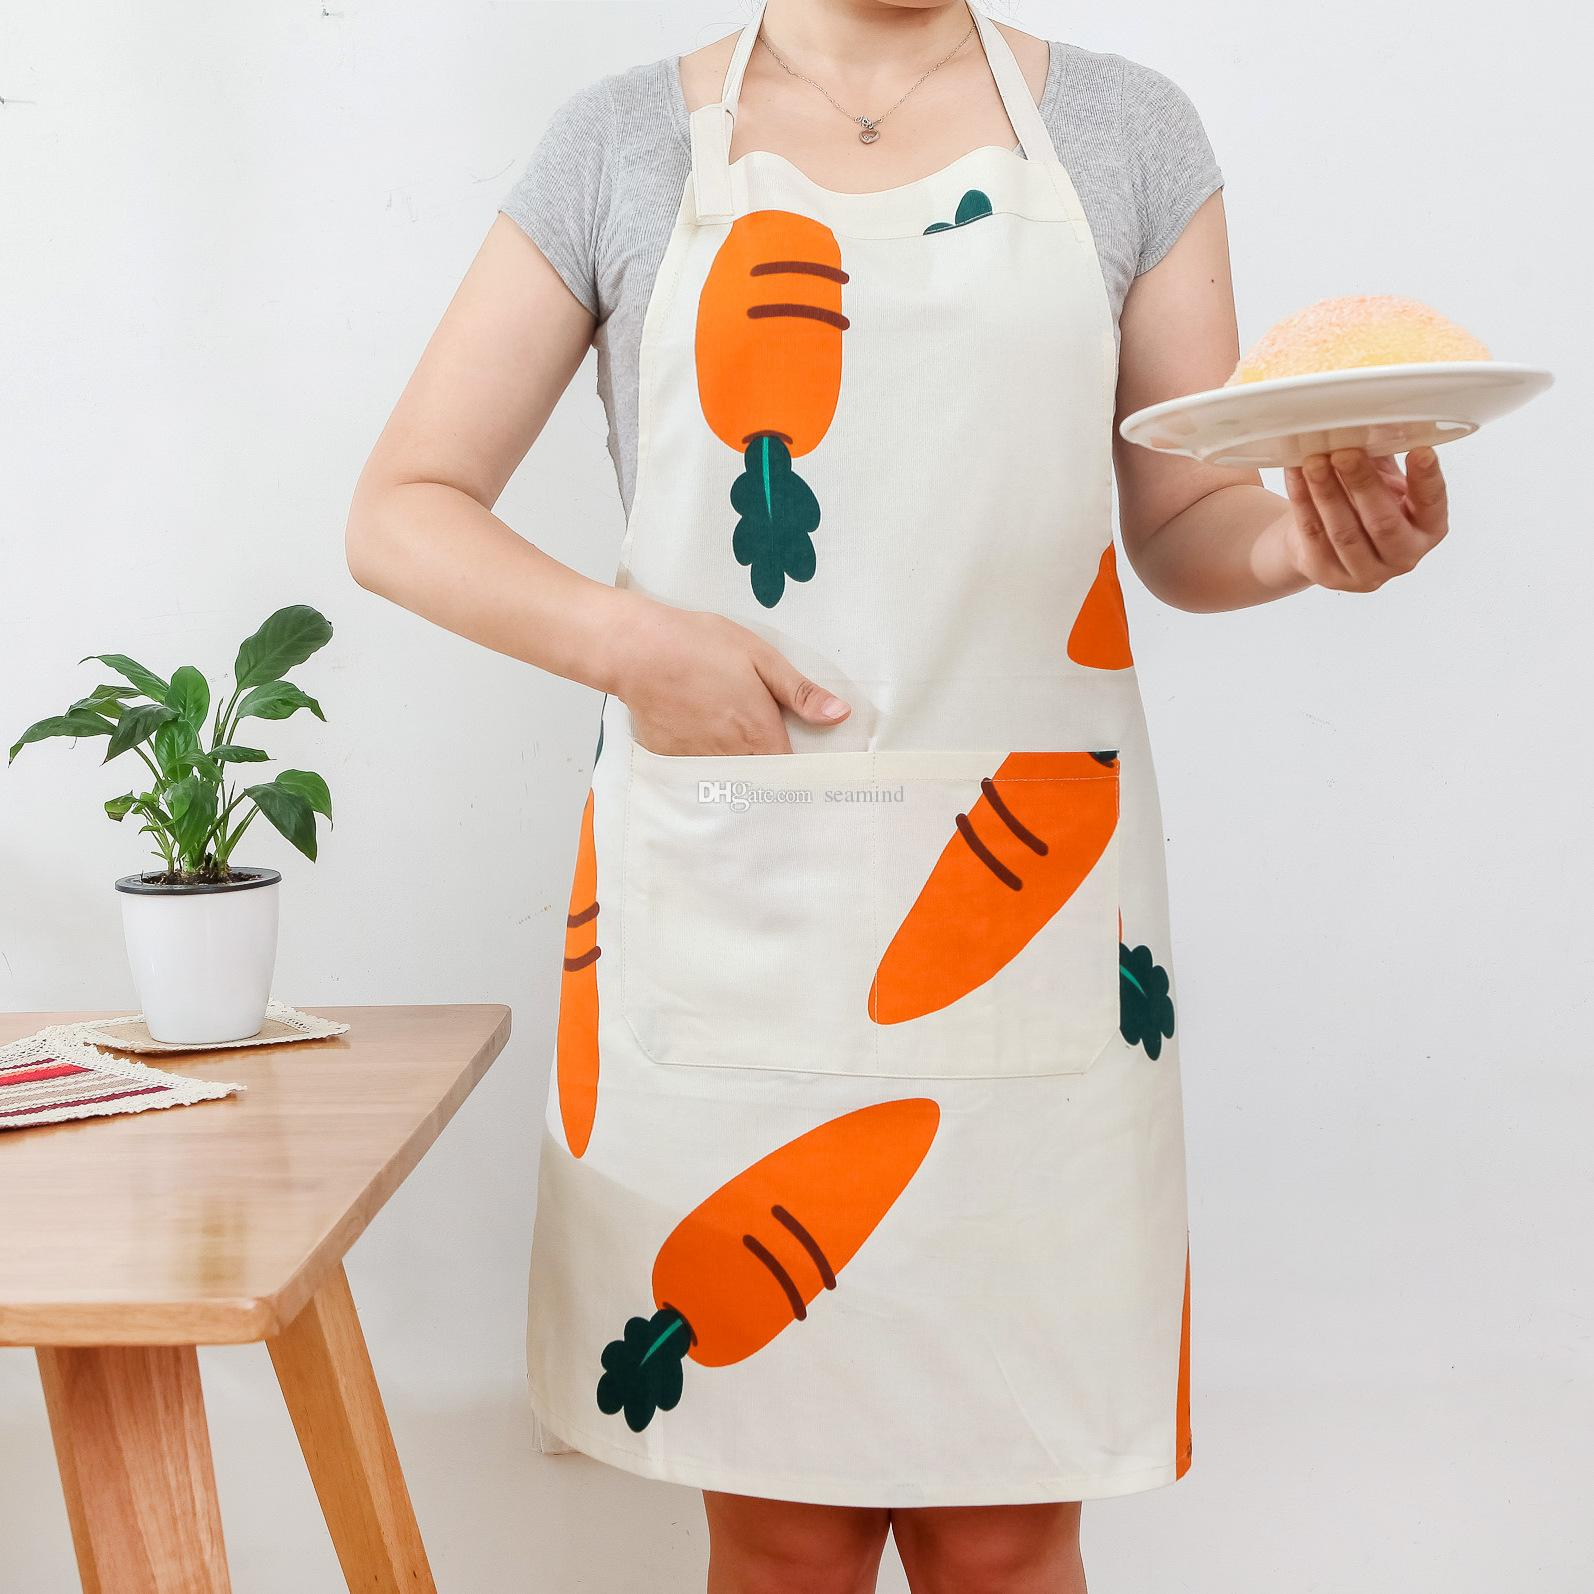 kitchen aprons island for cotton linen apron kids women barbecue restaurant funny creative carrot pattern printed with pocket hand towel butcher